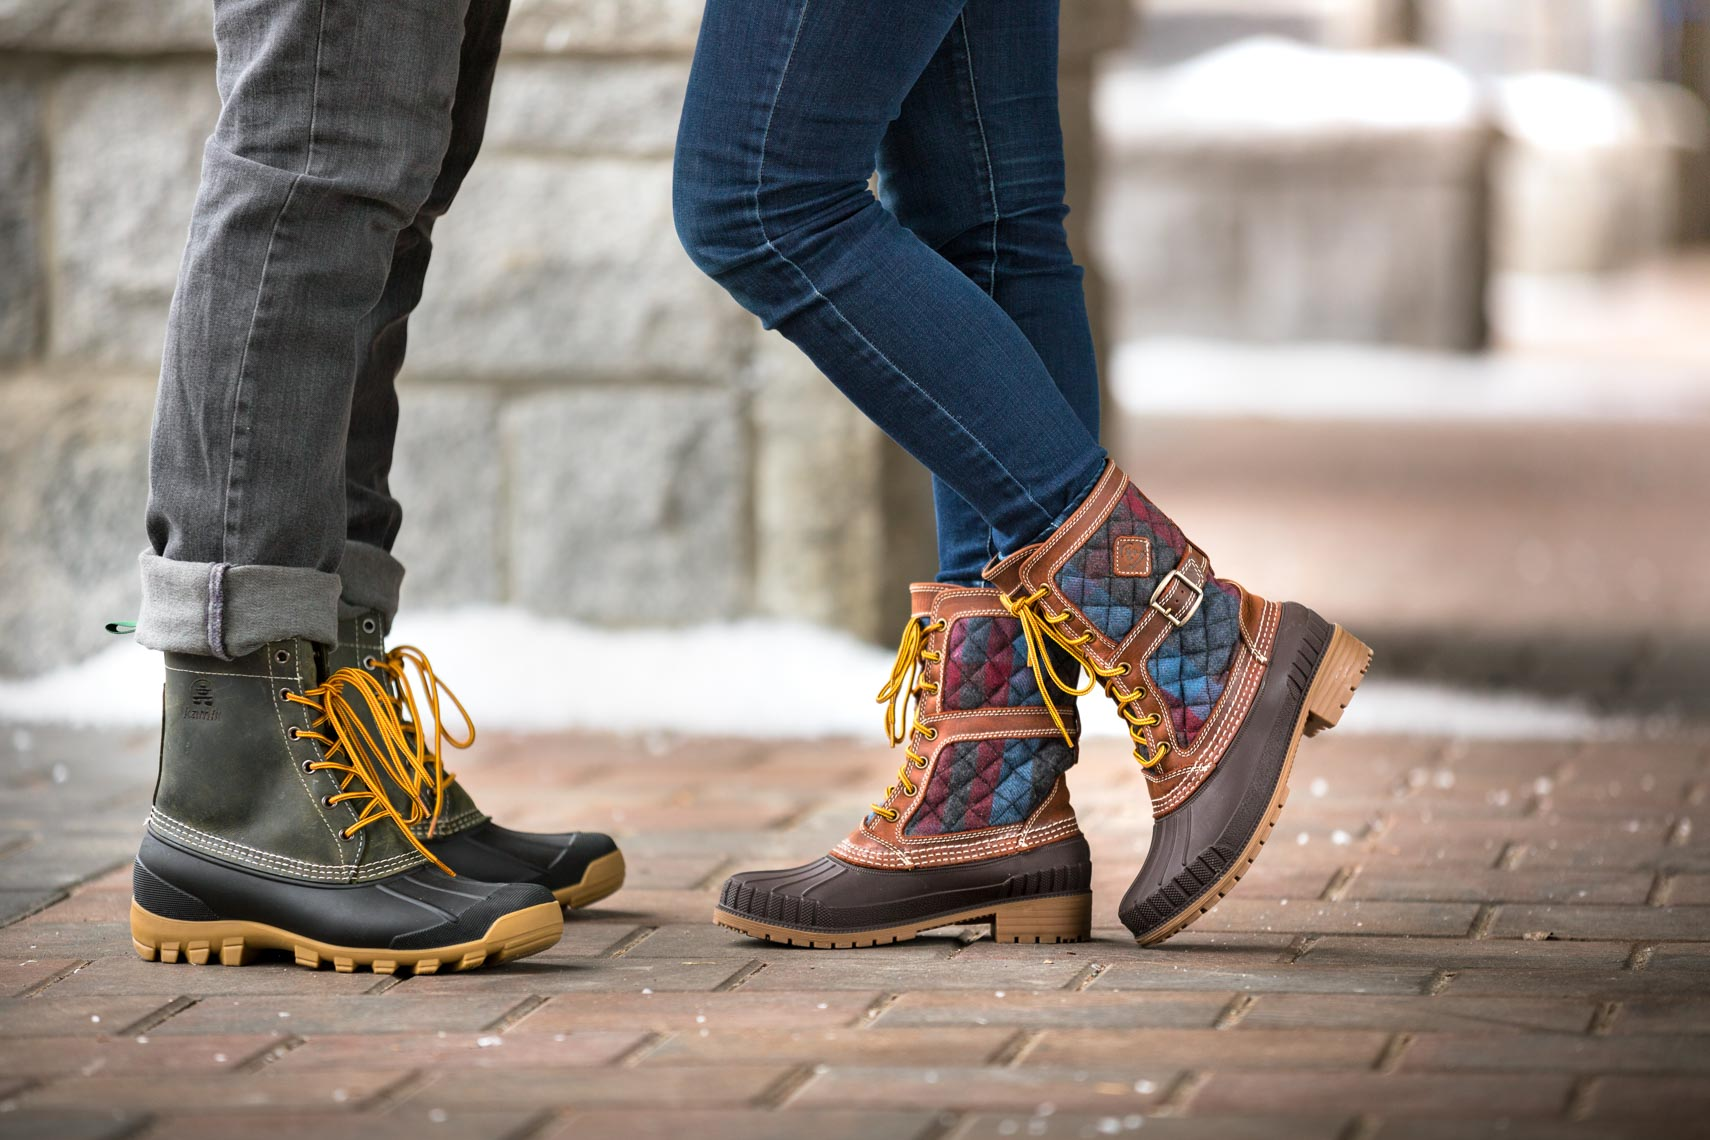 Kamik winter boots captured by outdoor apparel and product photographer in Whistler